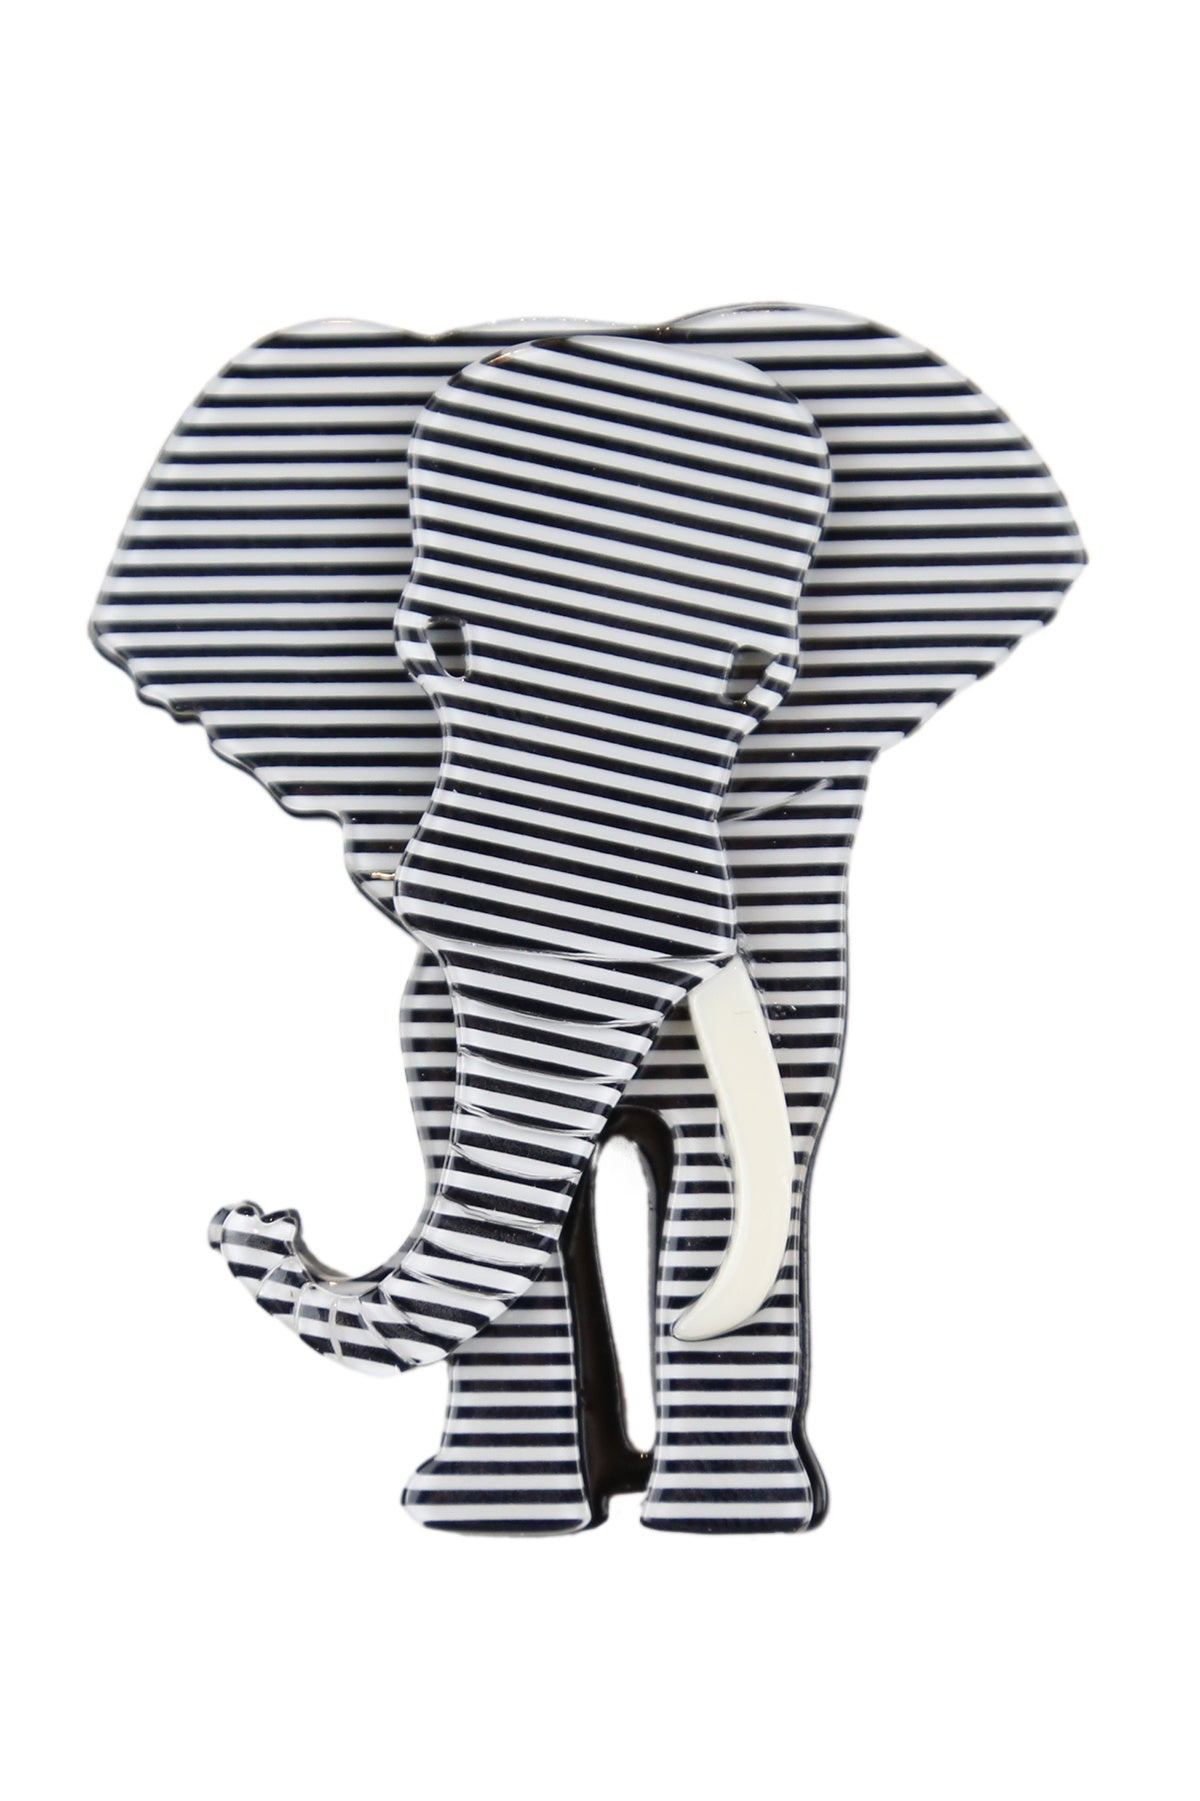 Elliot The Striped Elephant Broach